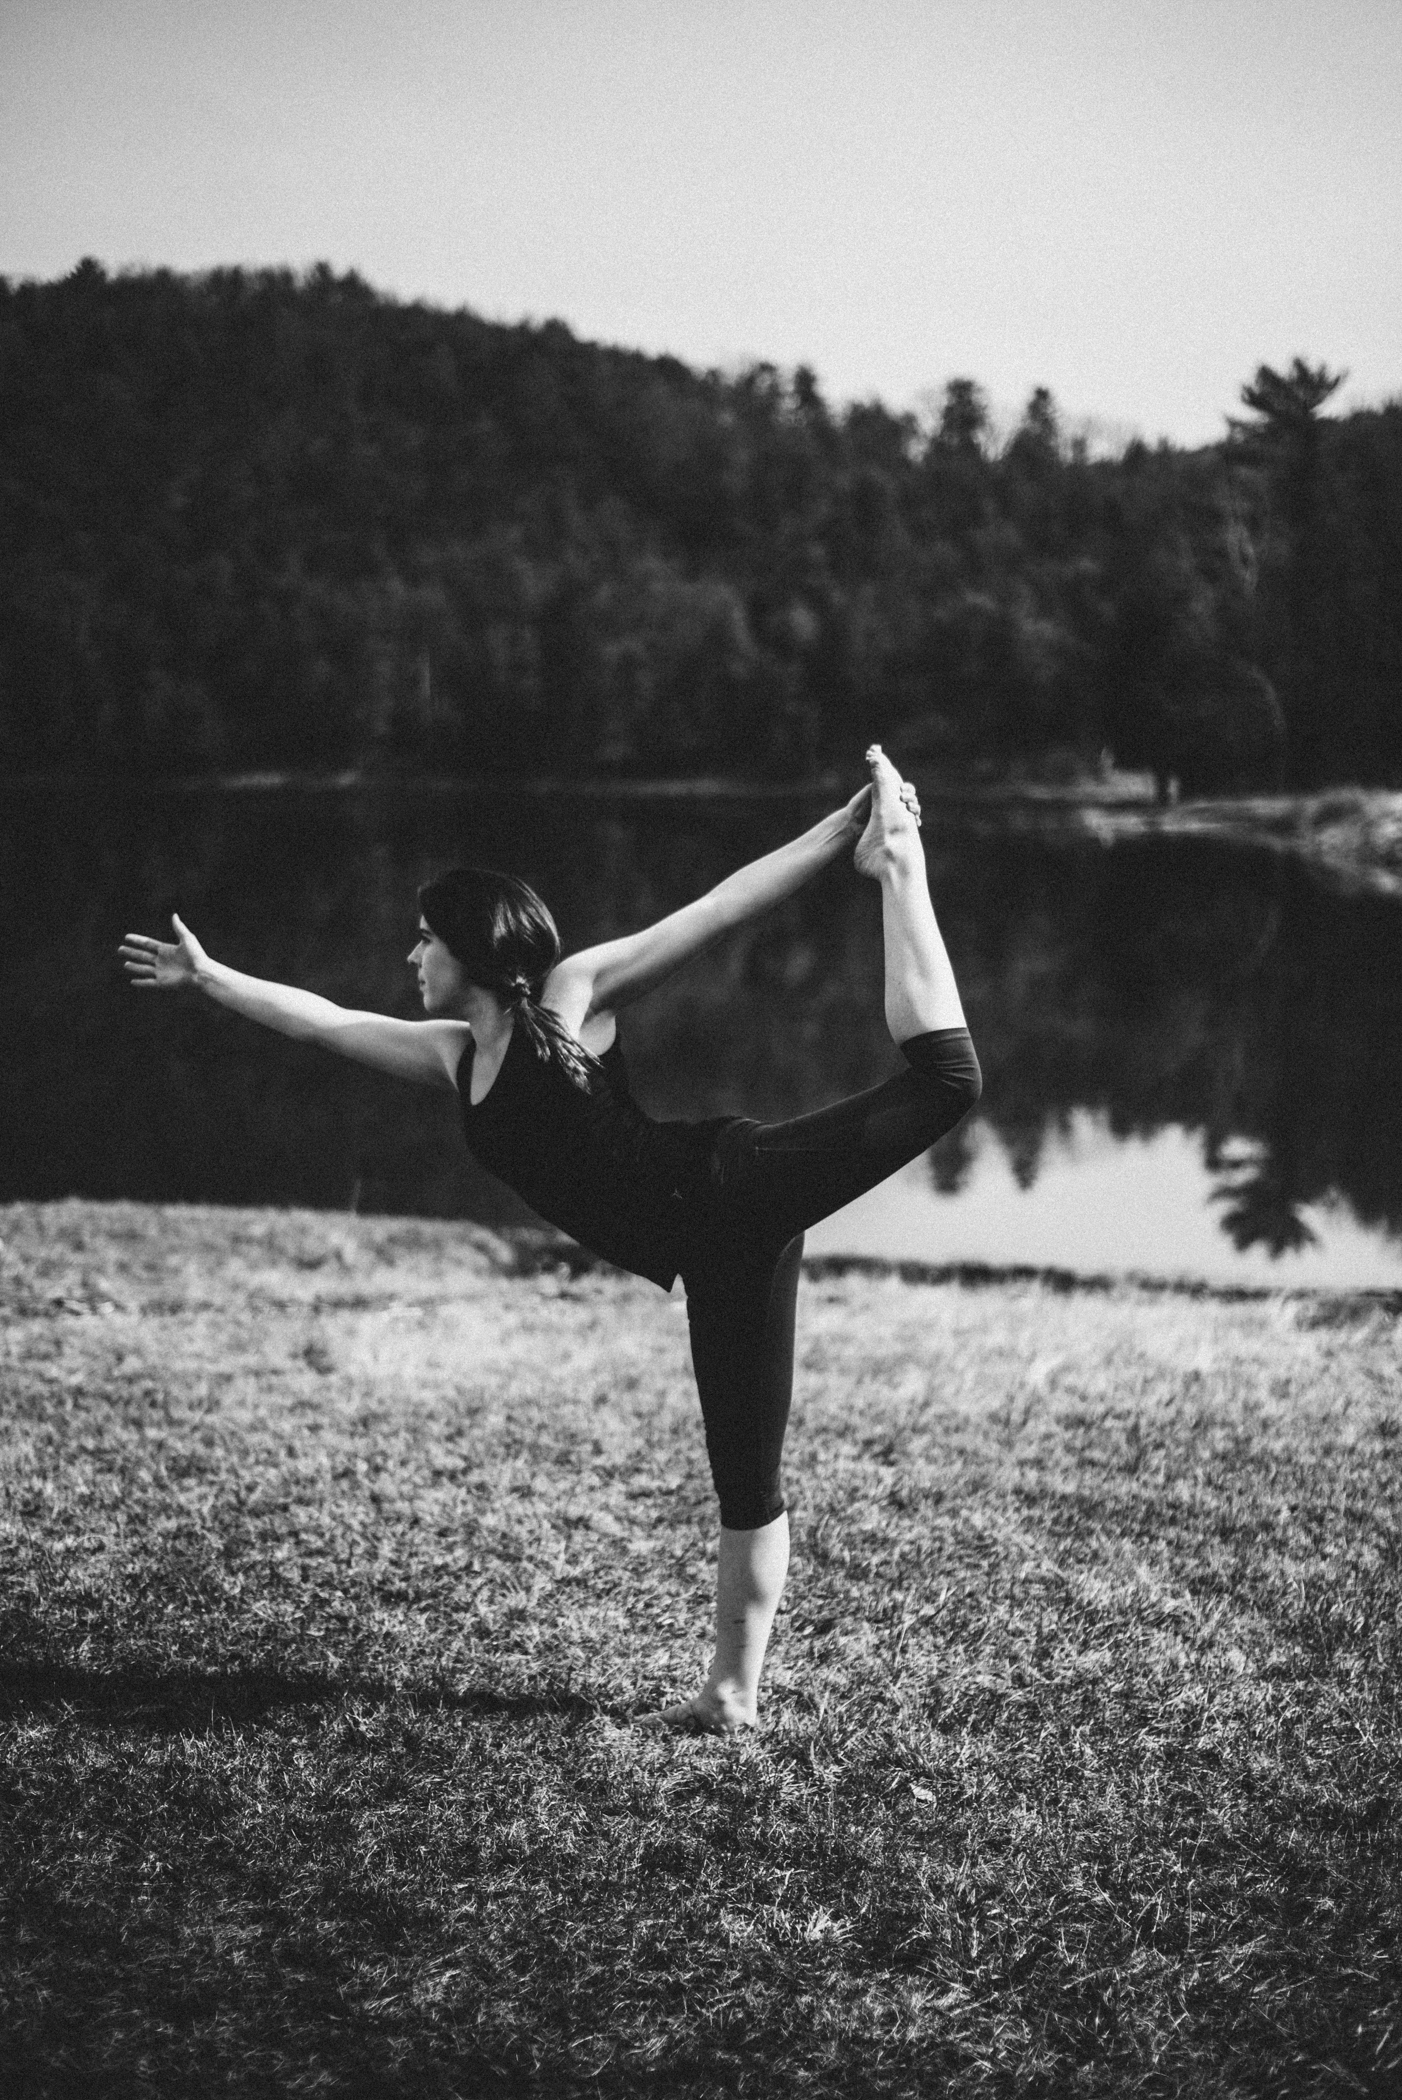 Yoga+Mountain+Top+Yoga+Portraits+at+Shenandoah+National+Park_11.jpg